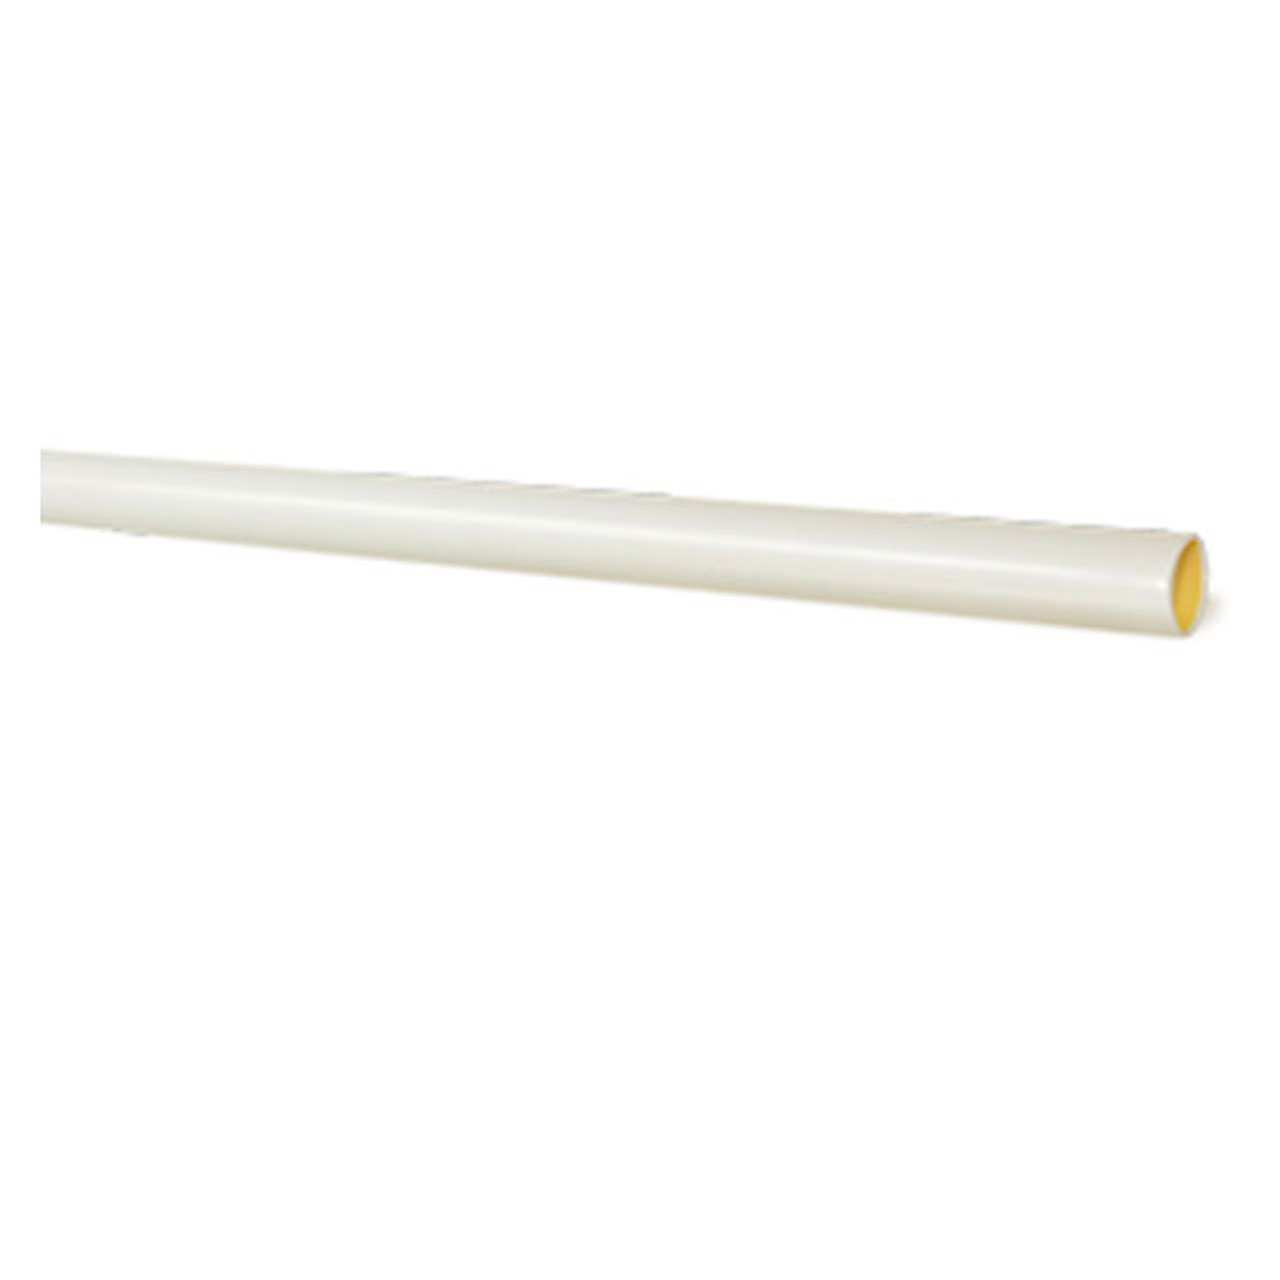 1/2 inch white adhesive lined dual wall heat shrink tubing, 48 inch length